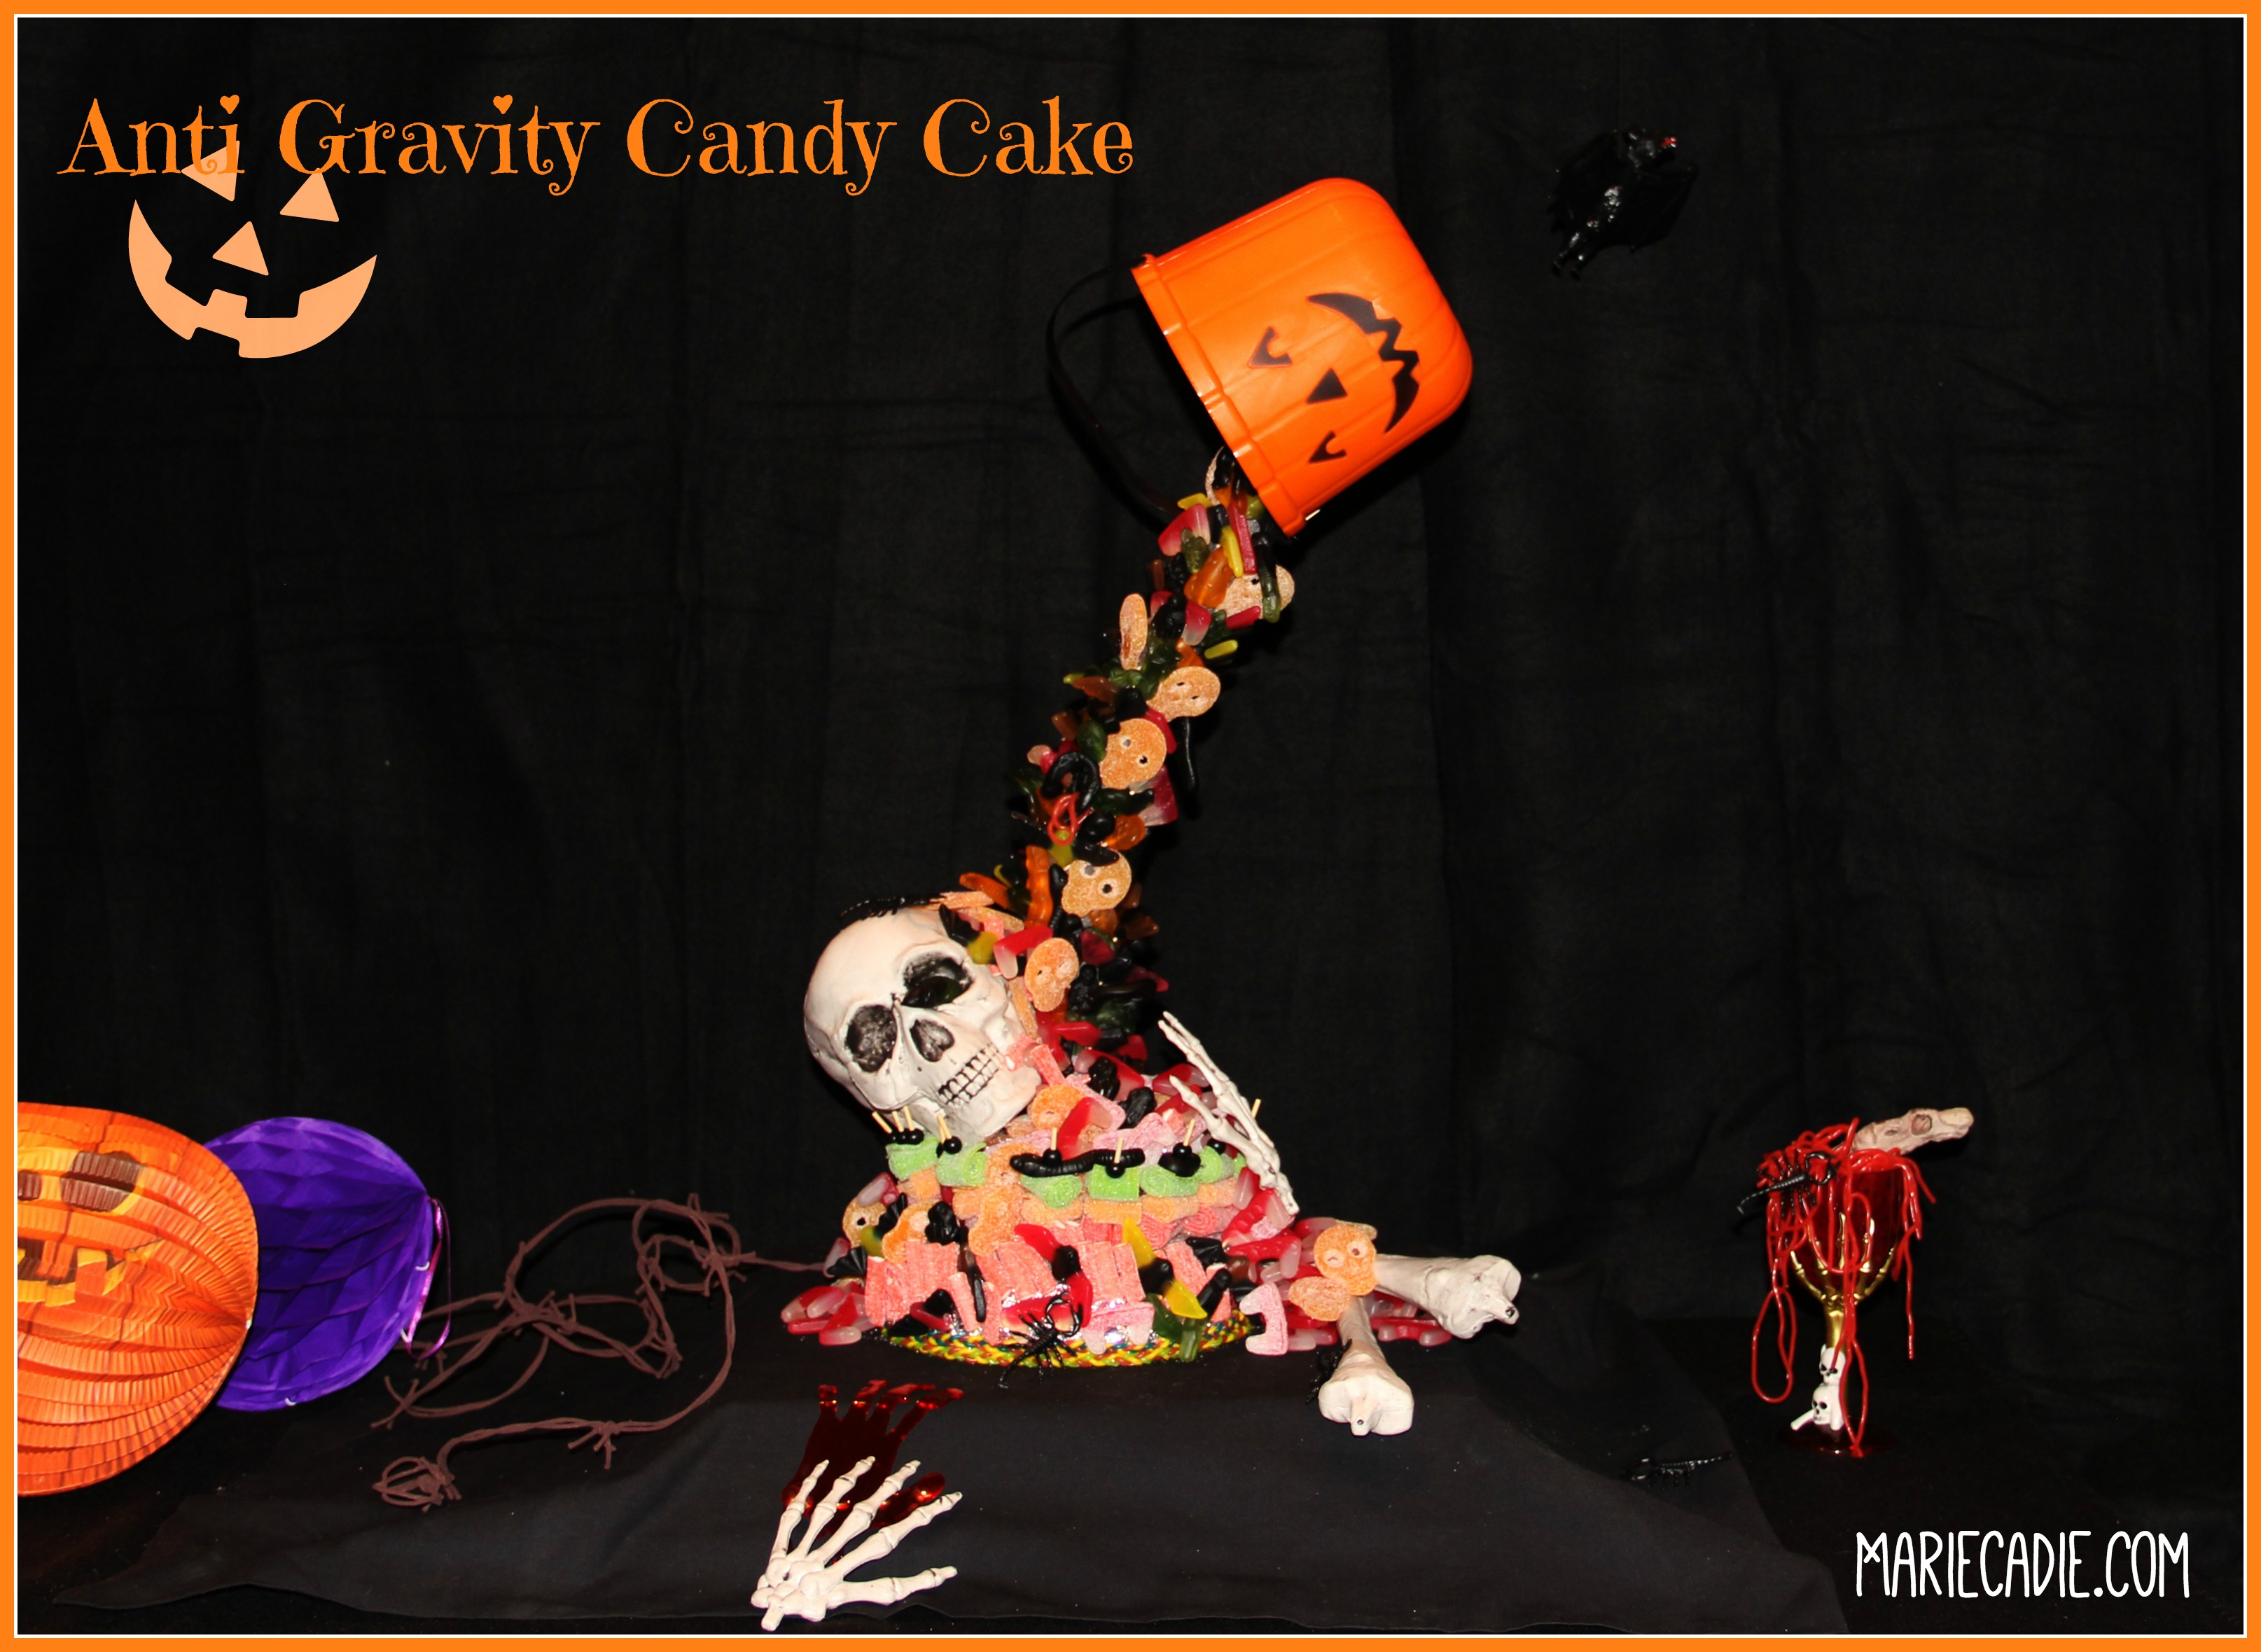 mariecadie-com-halloween-lutti-fun-anti-gravity-candy-cake_1